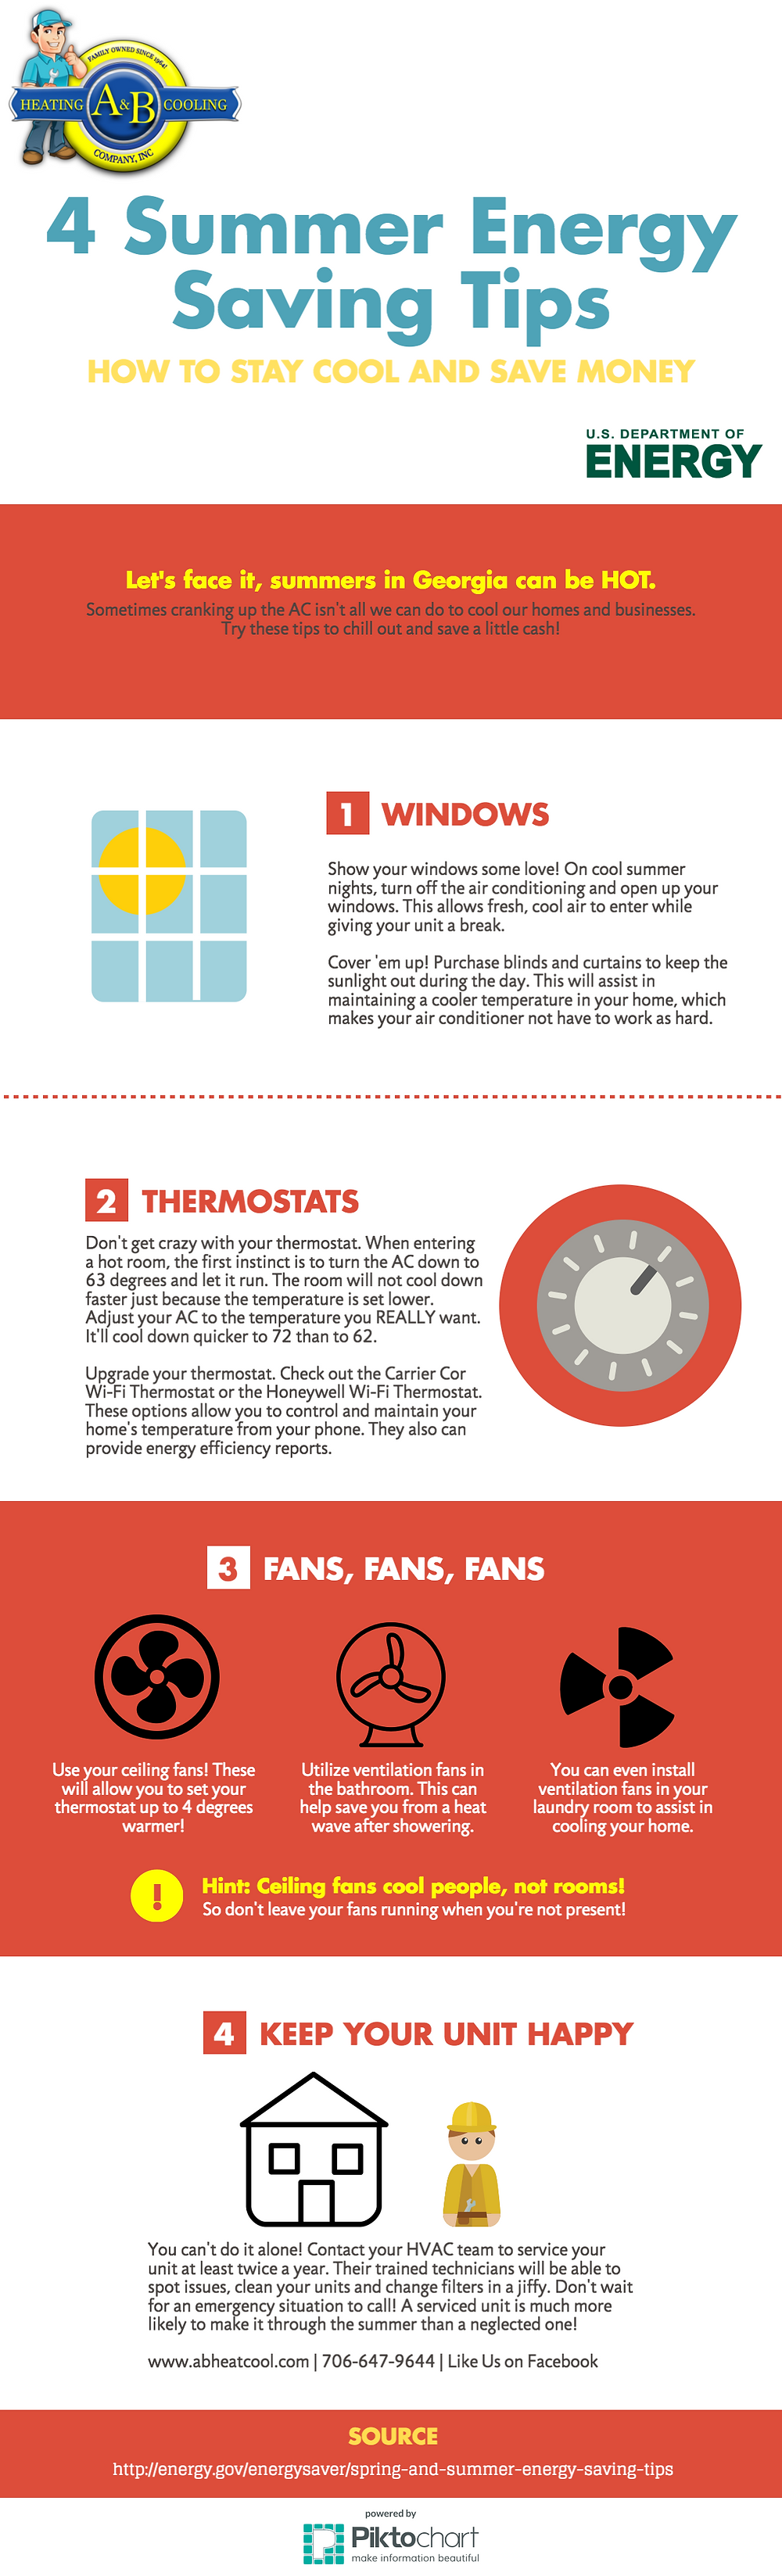 energy saving tips, how to save money on electricity, summer energy tips, save money on air conditioning